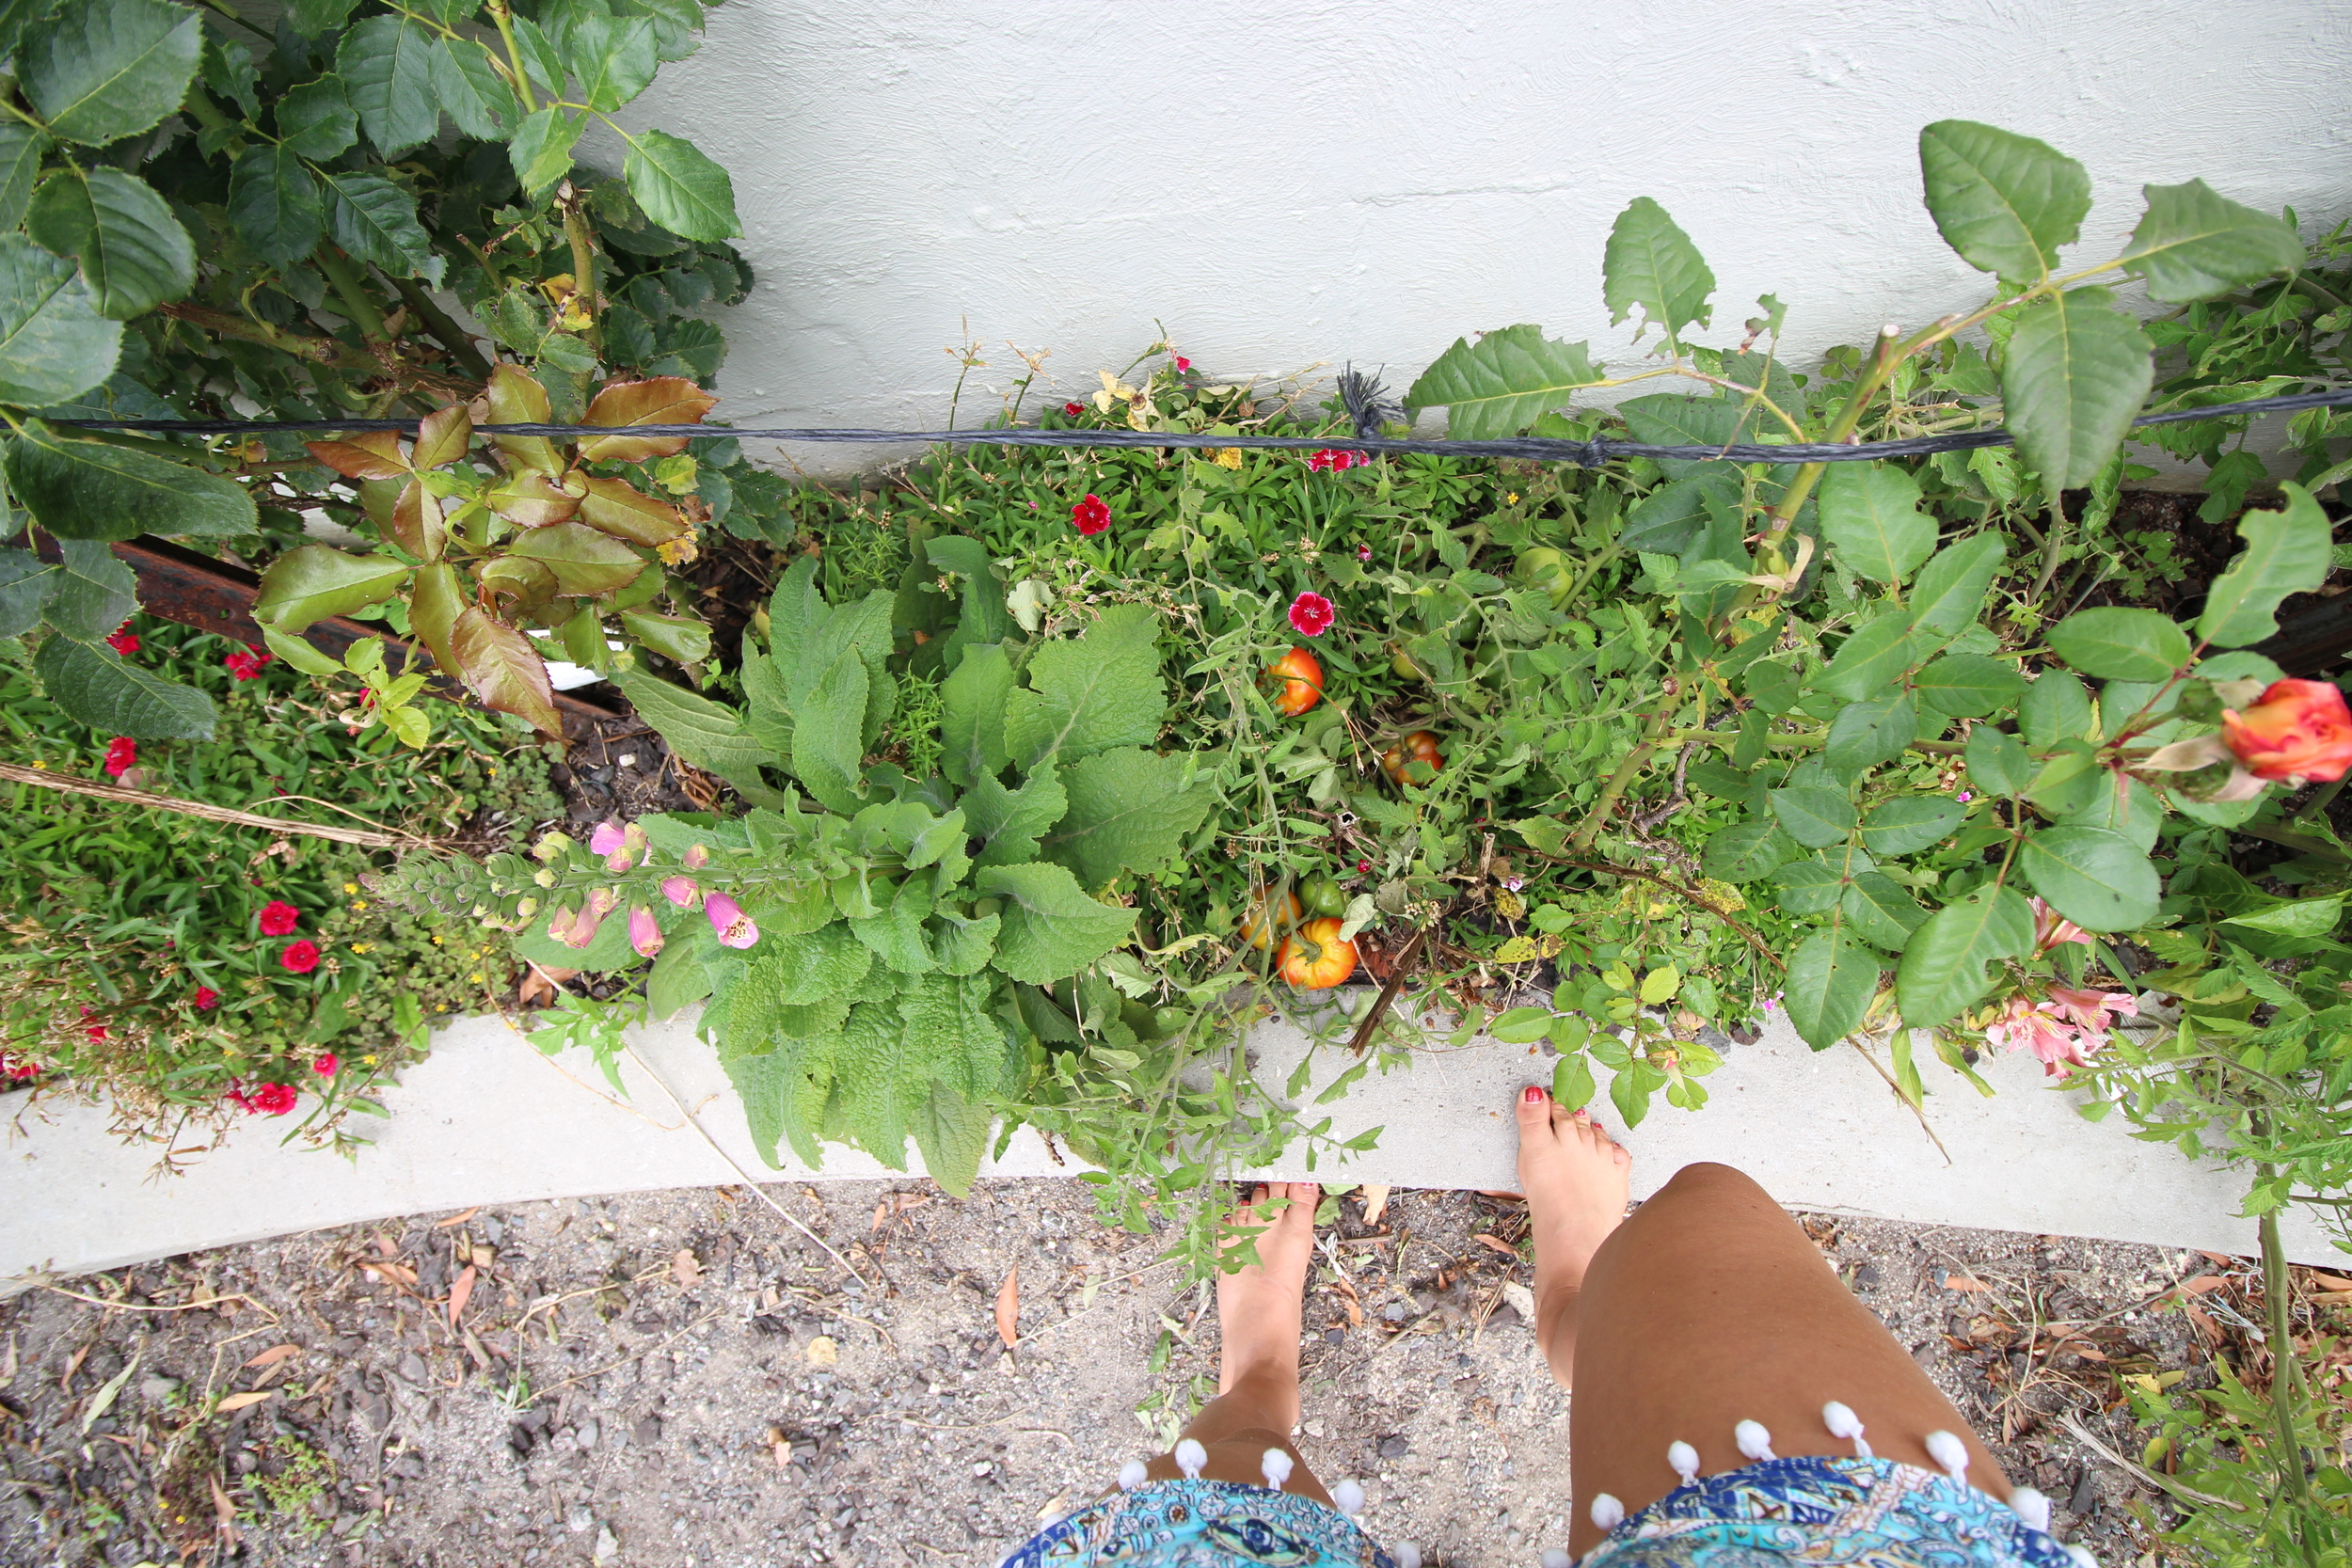 barefoot wandering through the garden, vine ripened tomatoes, herbs, and flowers. Mum and dads Garden is cottage style untamed and beautiful. There are hidden gems everywhere.